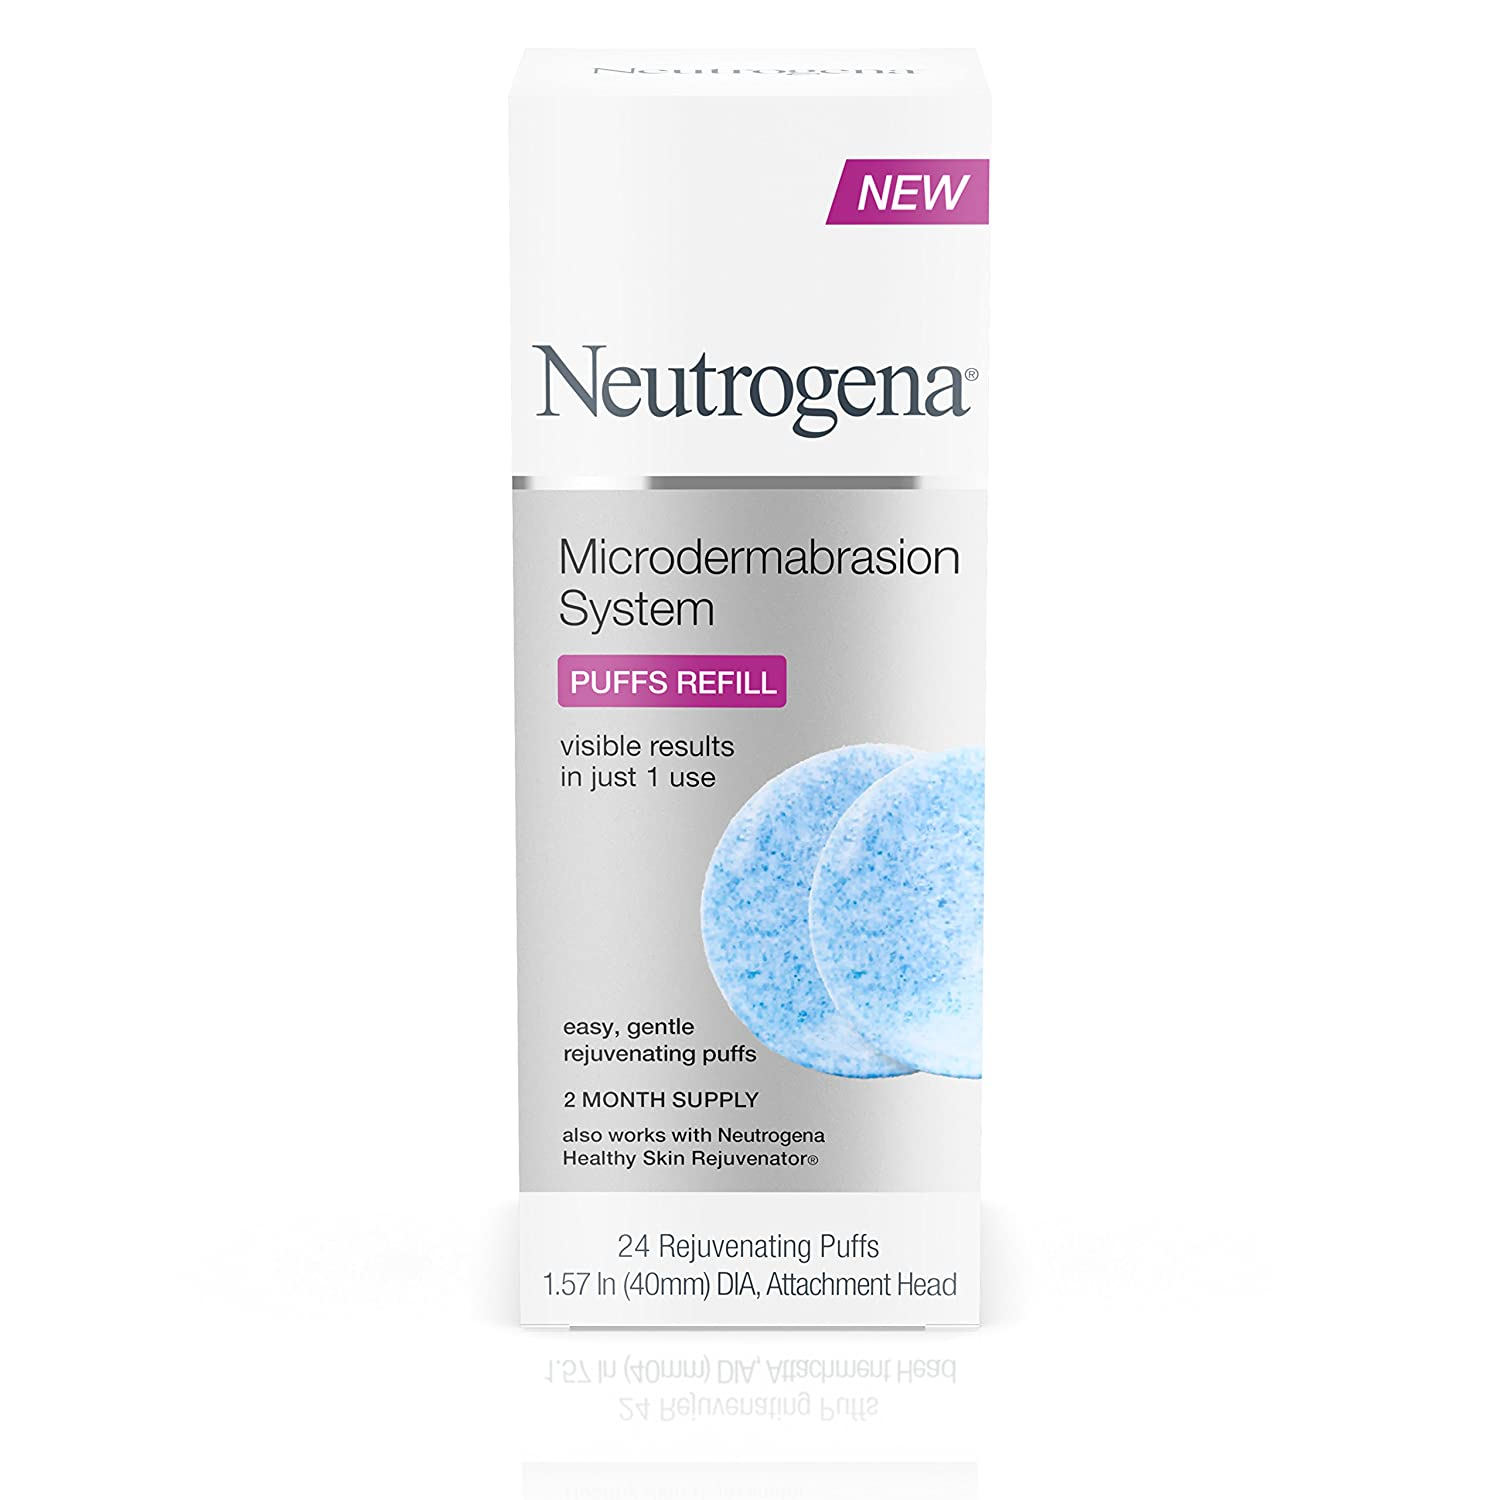 Neutrogena Microdermabrasion System Exfoliating Puff Refills, 24 Count Johnson & Johnson SLC 070501055243